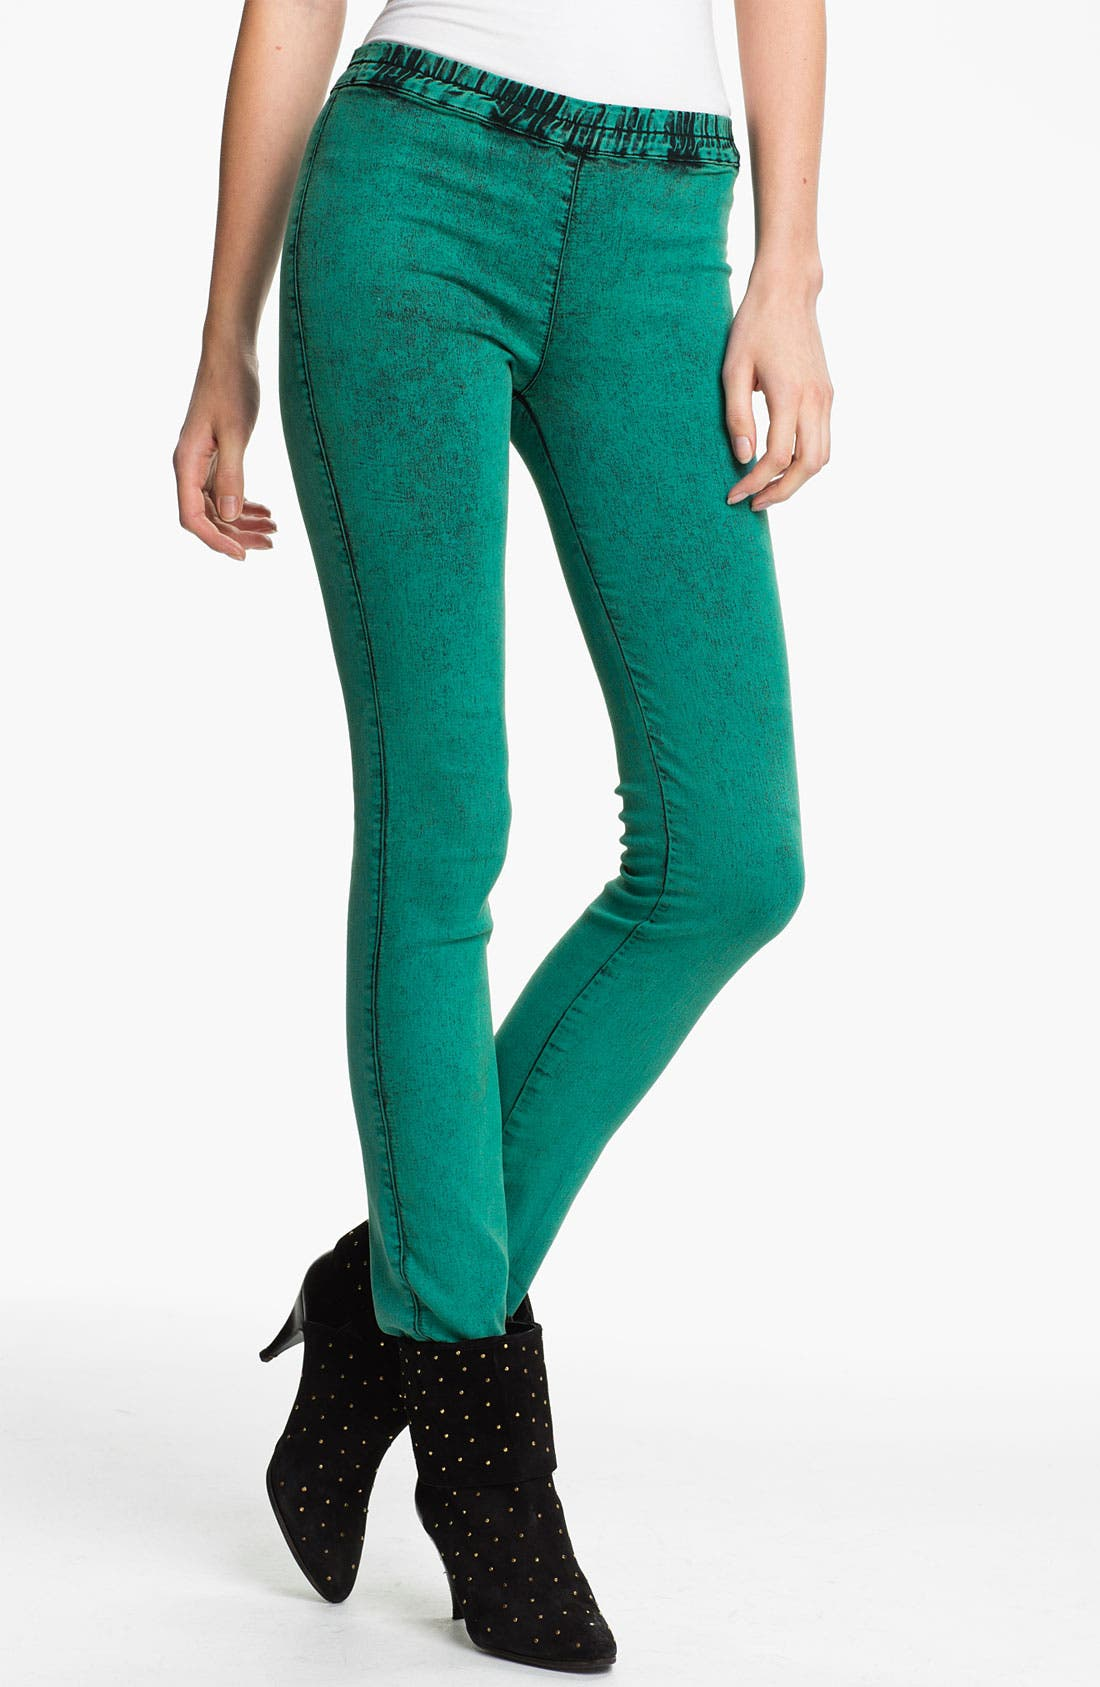 Main Image - Kelly Wearstler 'Mineral Wash' Stretch Twill Leggings